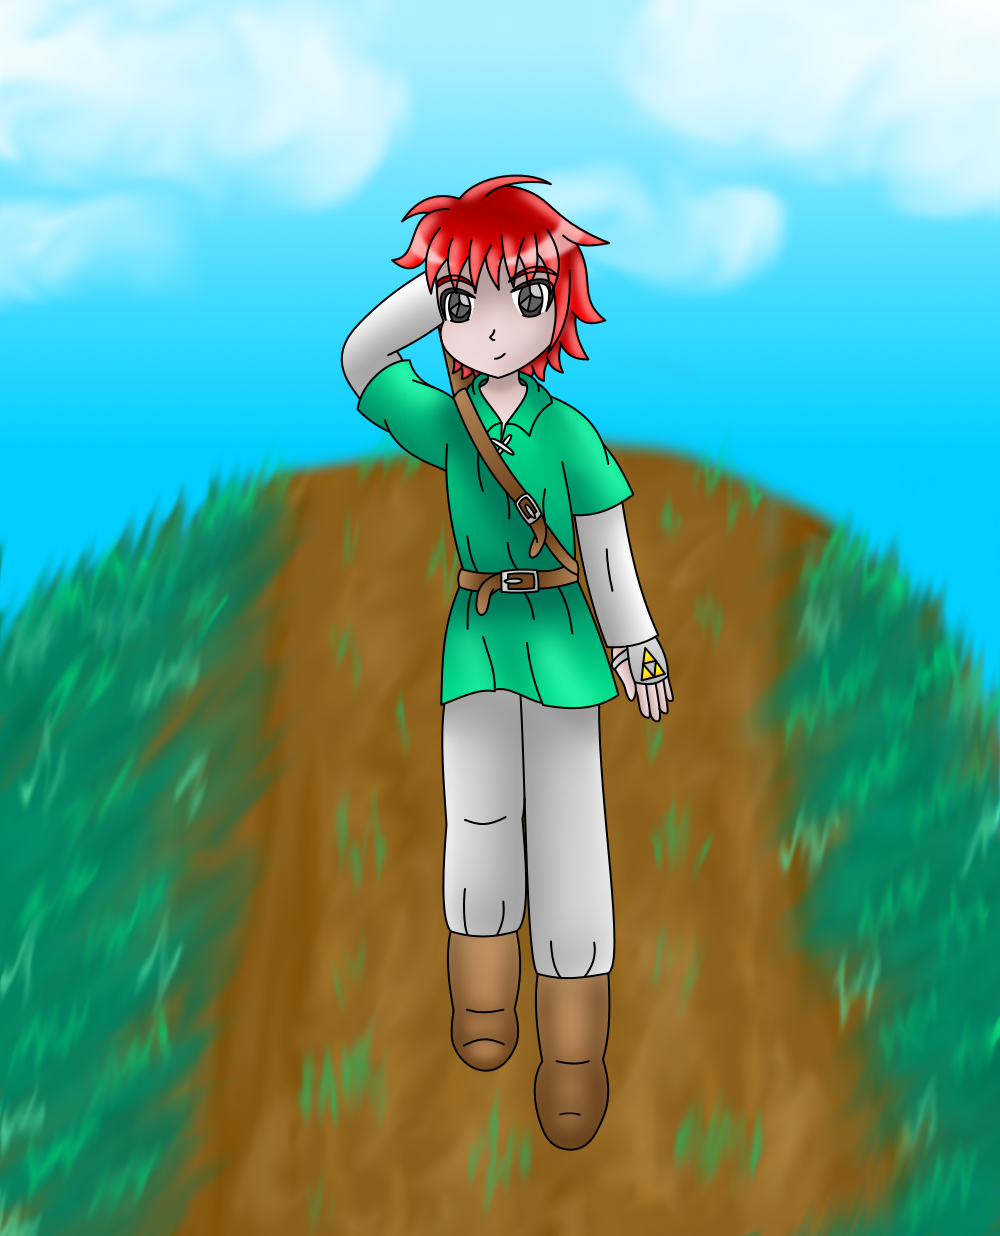 Adol (Ys) dressed as Link by AzureMikari